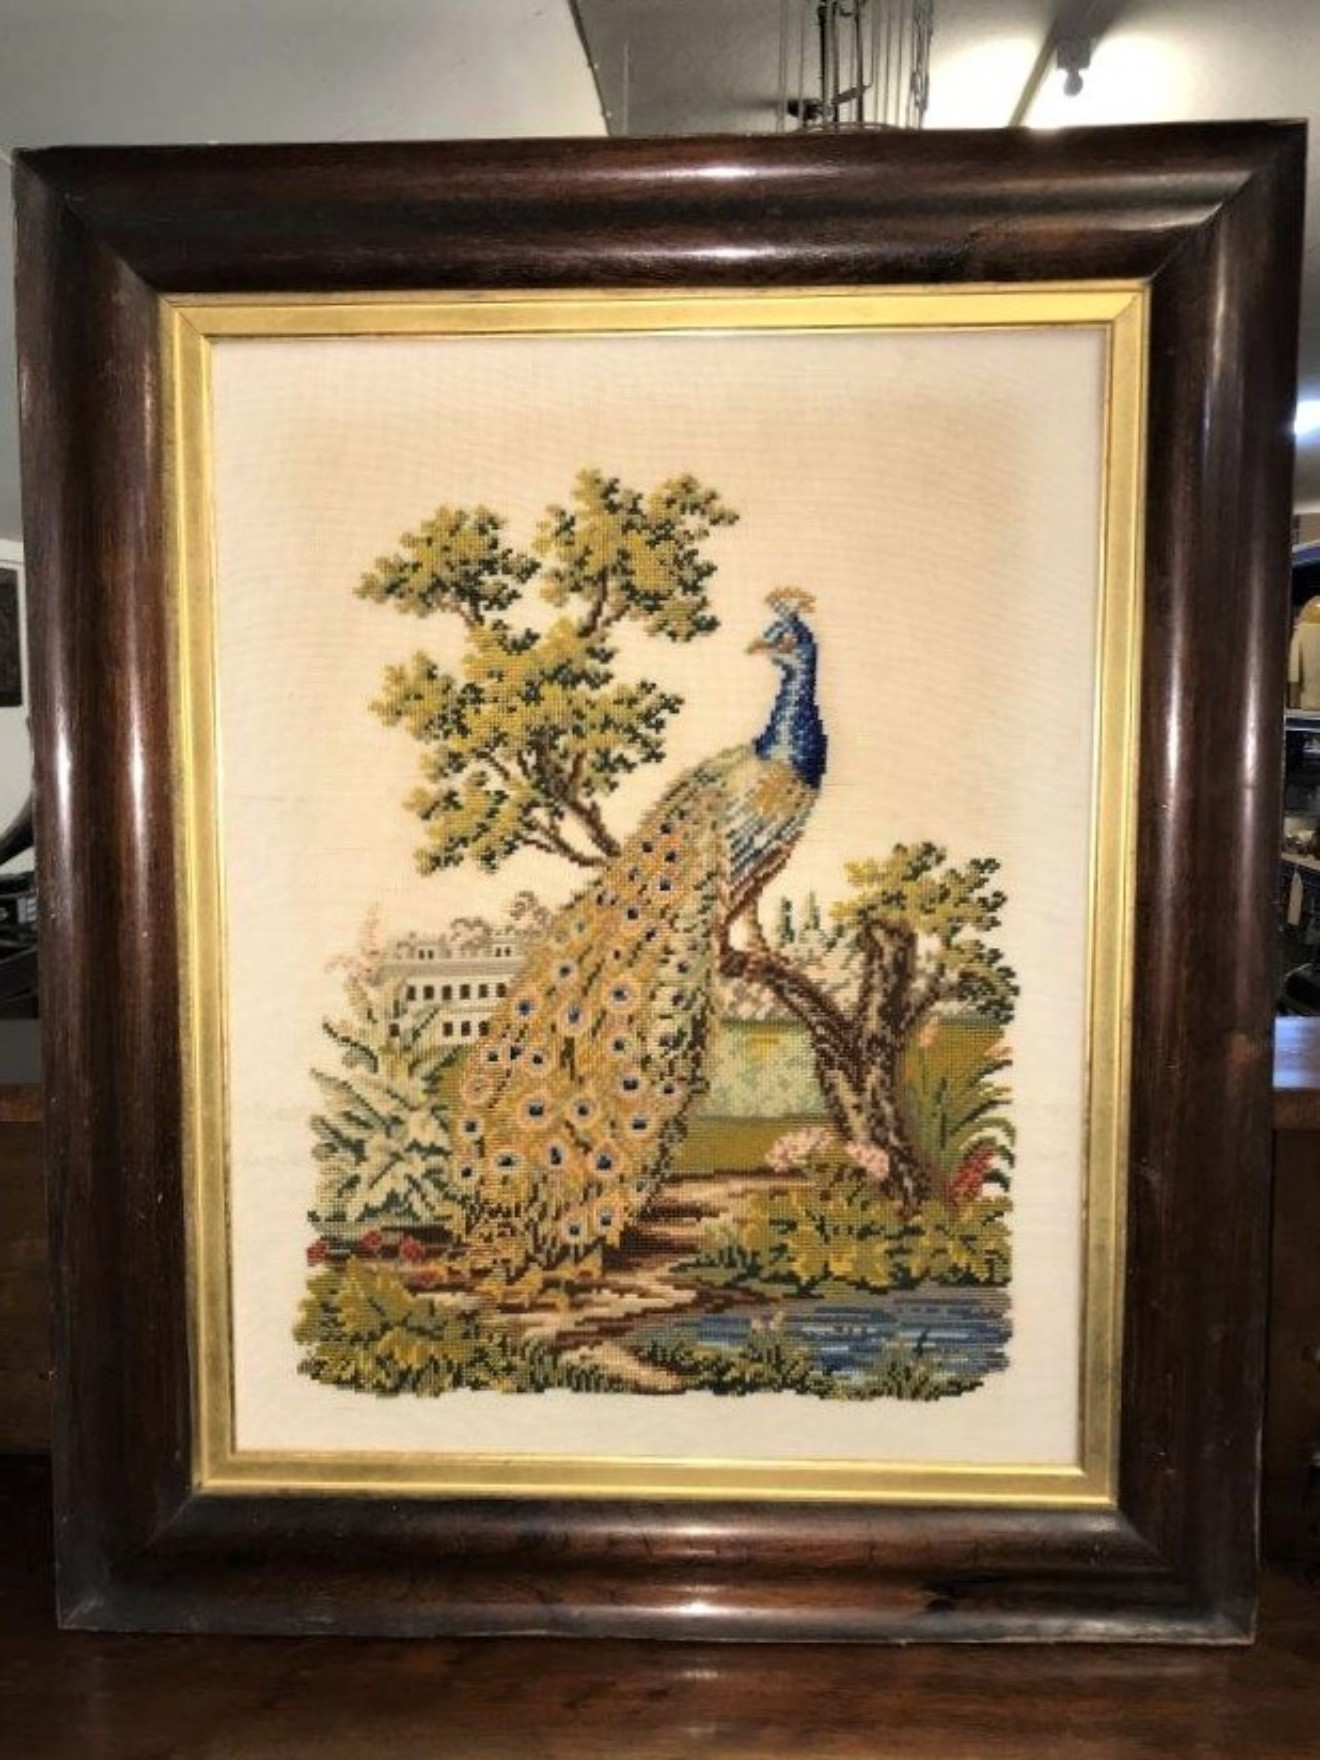 Tapestry of a Peacock